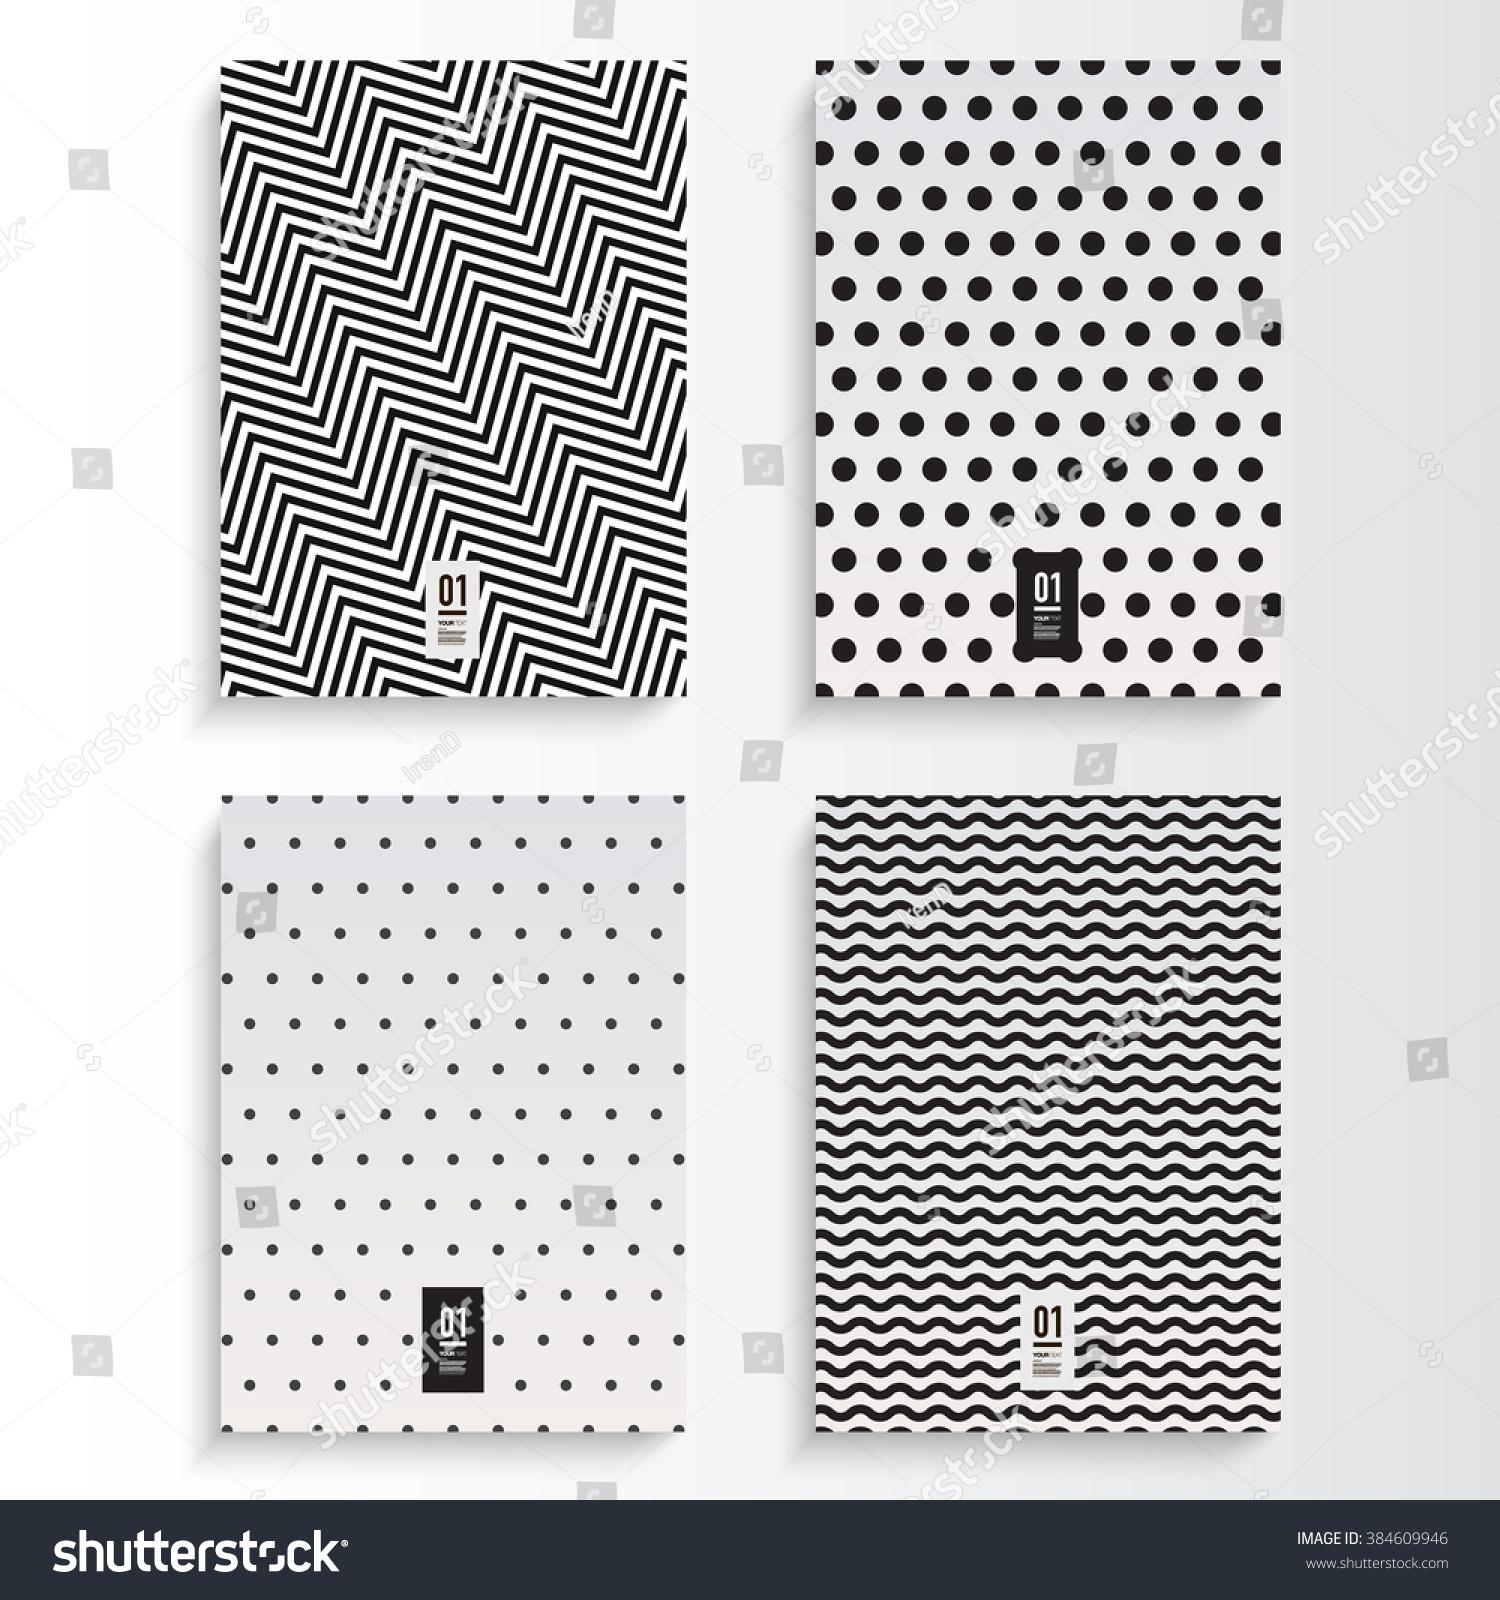 Book Cover Design Black And White : Abstract minimal black and white flyer or book cover